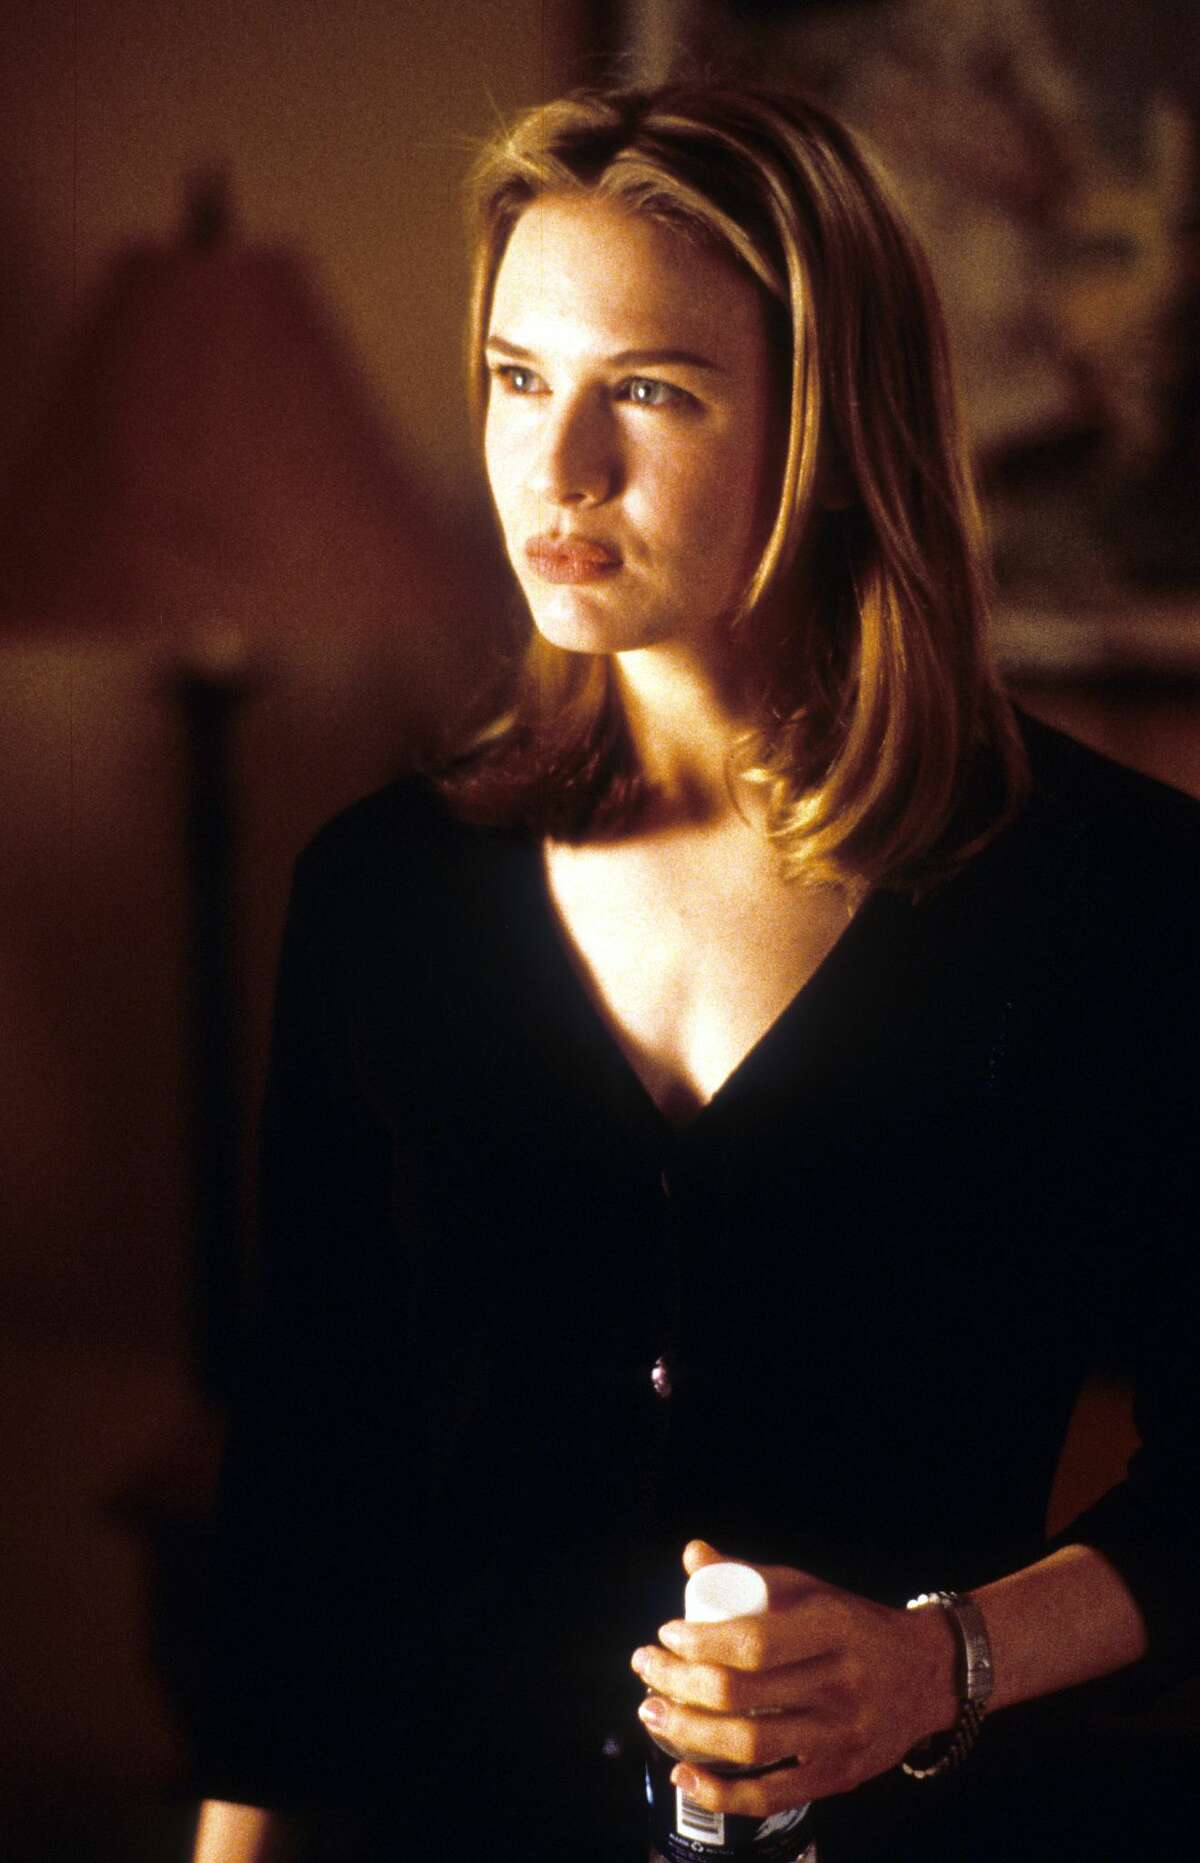 Renee Zellweger in a scene from the film 'Jerry Maguire', 1996. Keep clicking to see more photos of Renee Zellweger throughout her career.